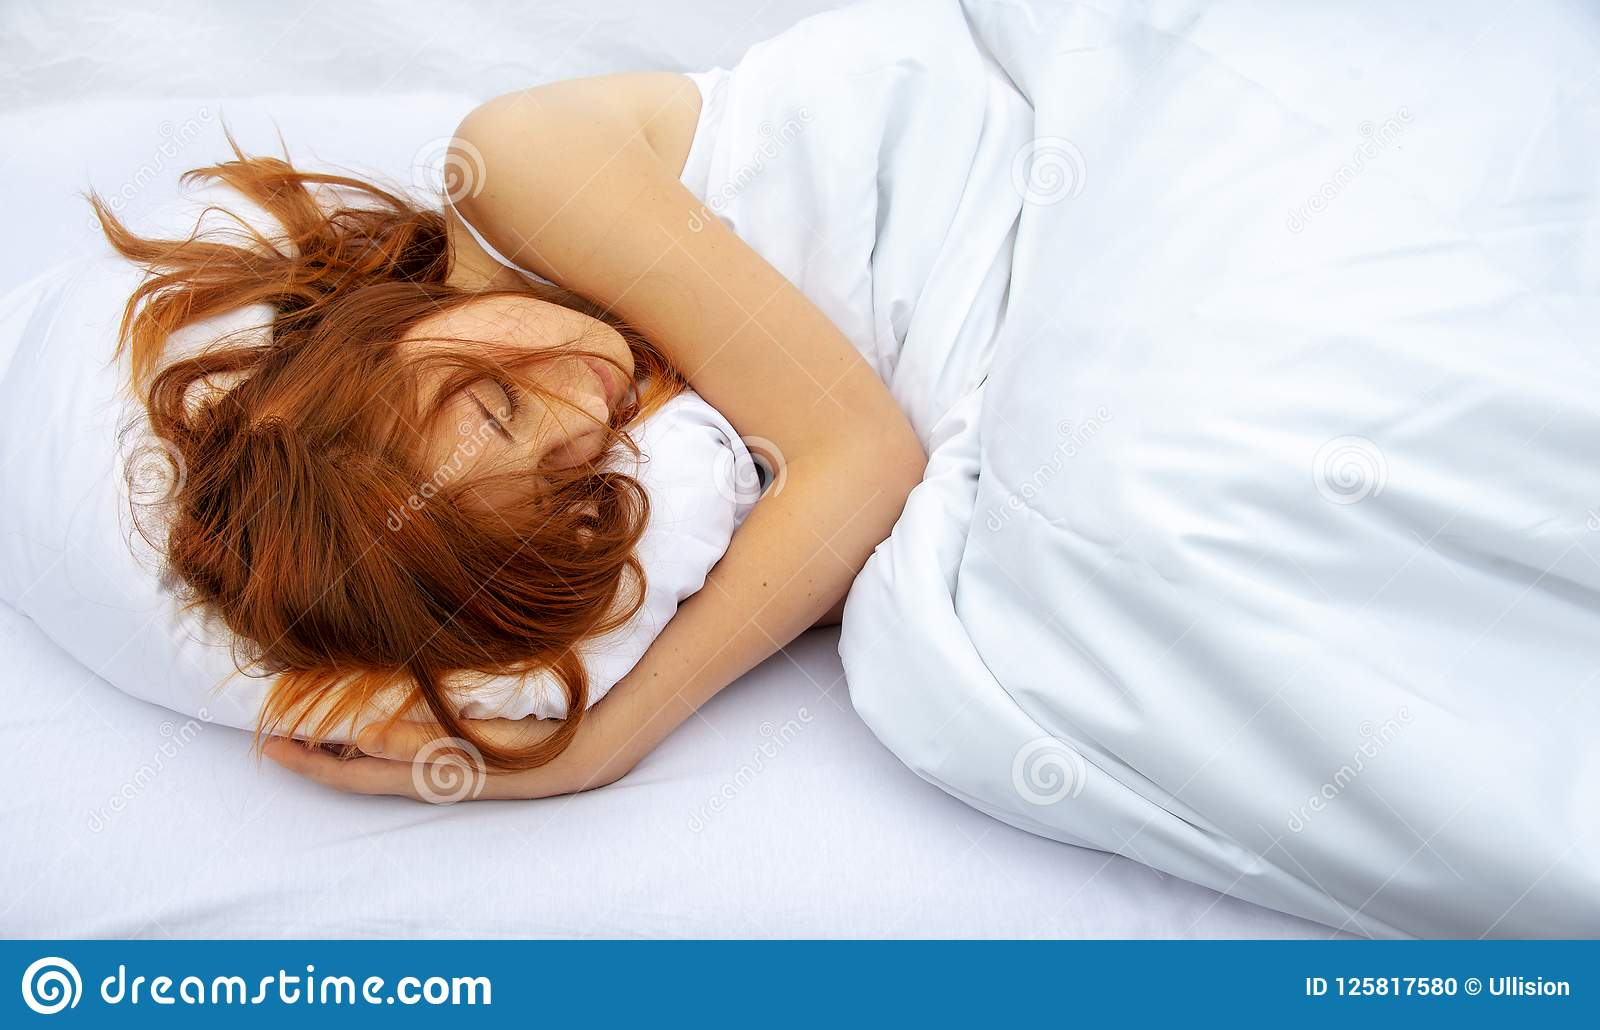 Top view of attractive, young, red-haired woman relaxing in bed hugging a soft white pillow, sleeping